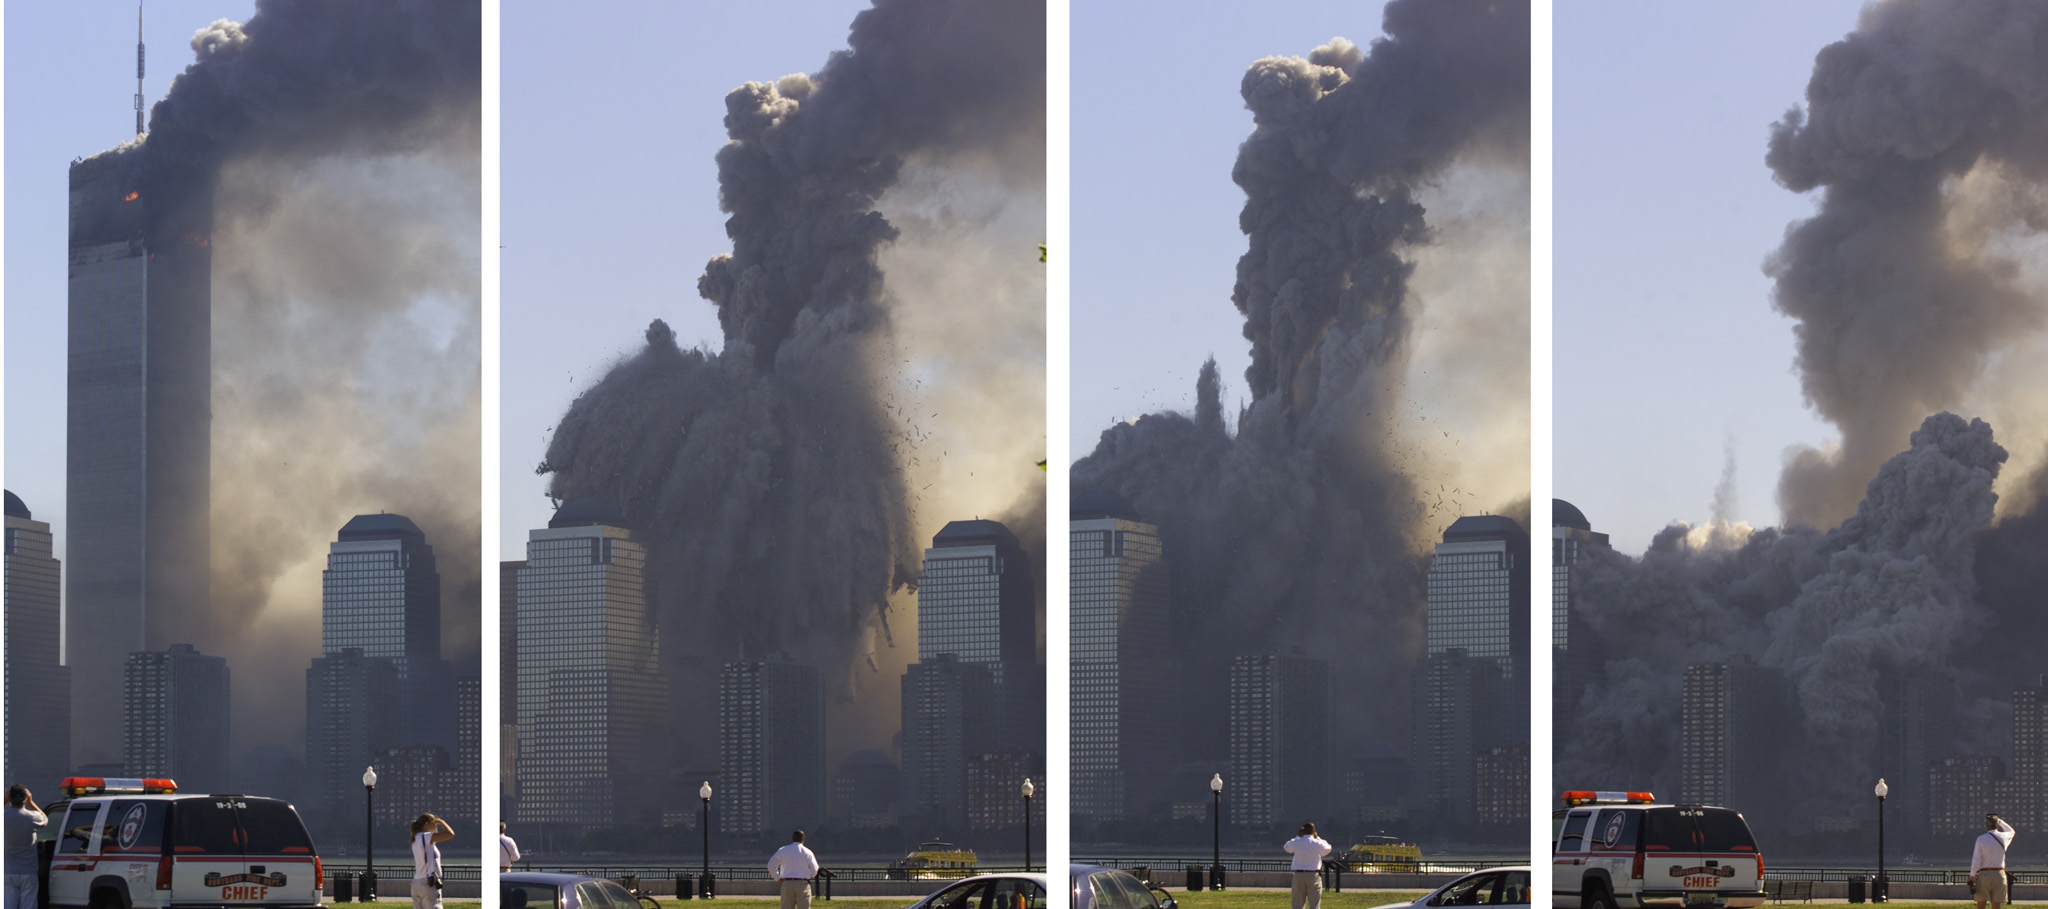 NEW YORK'S WORLD TRADE CENTER COLLAPSES.